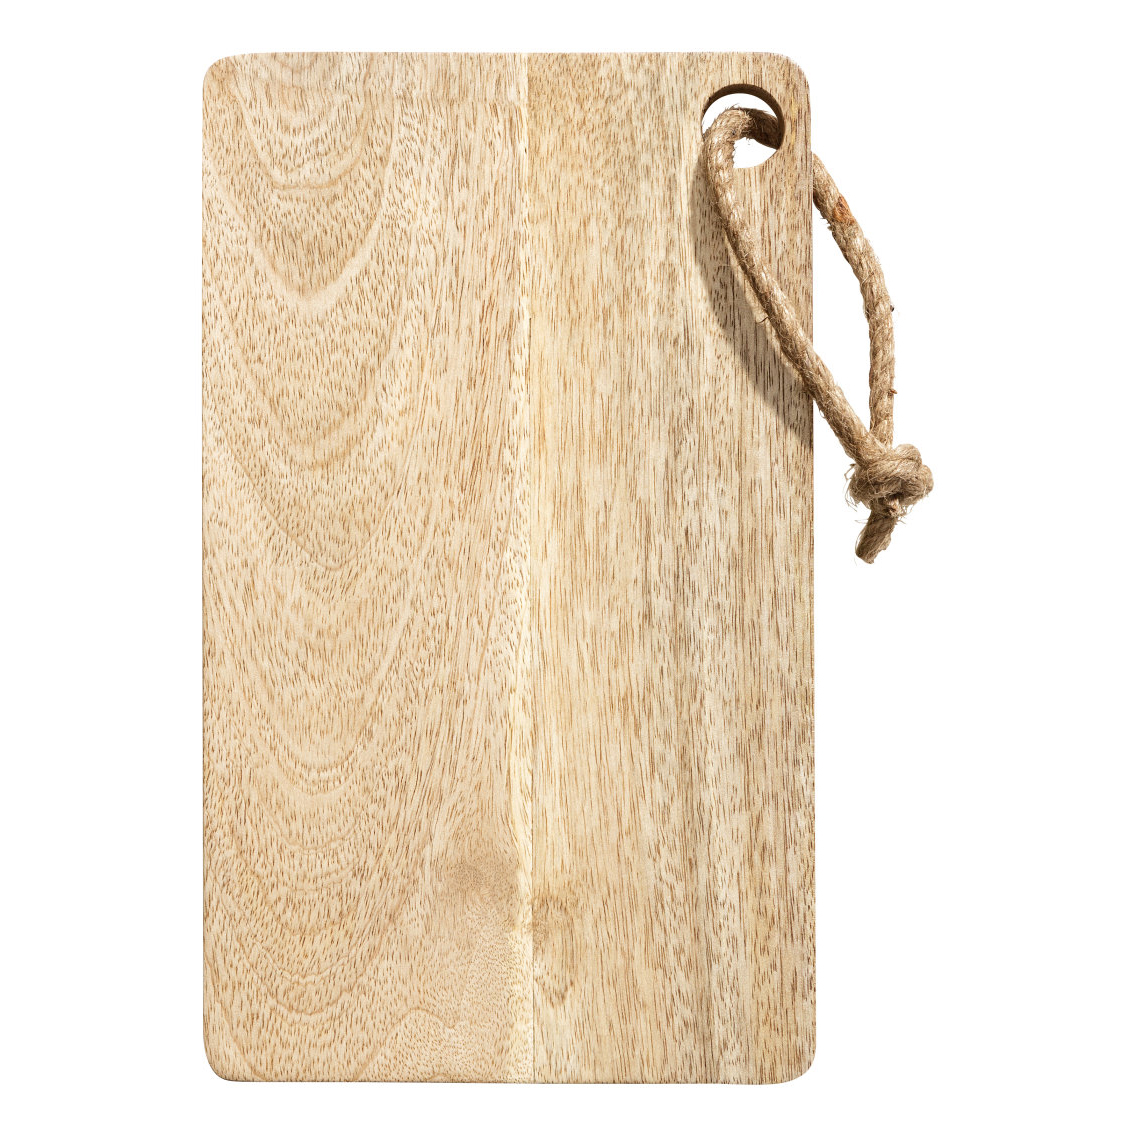 H&M wood cutting board